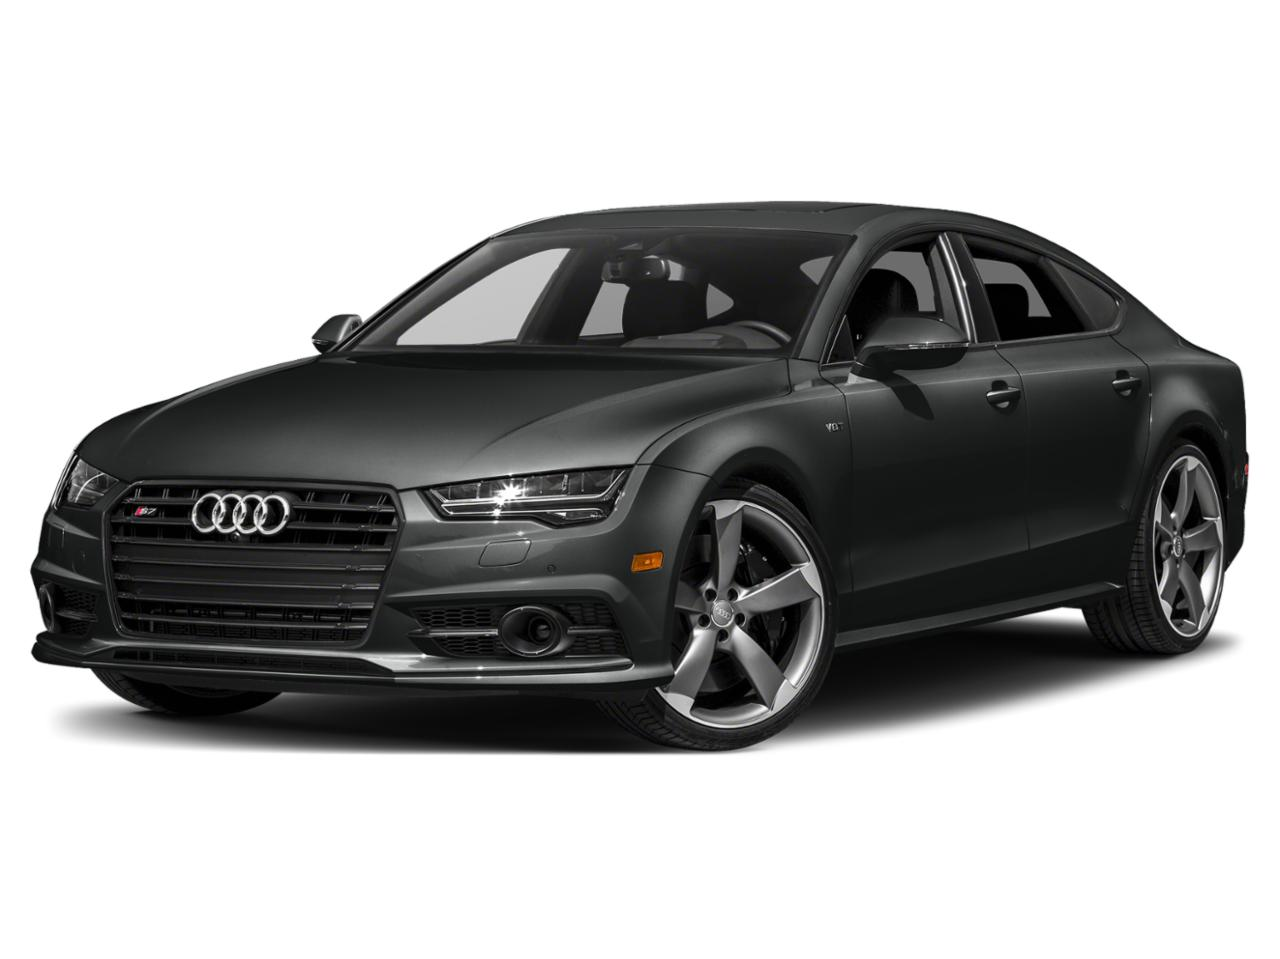 2018 Audi S7 Vehicle Photo in Allentown, PA 18103